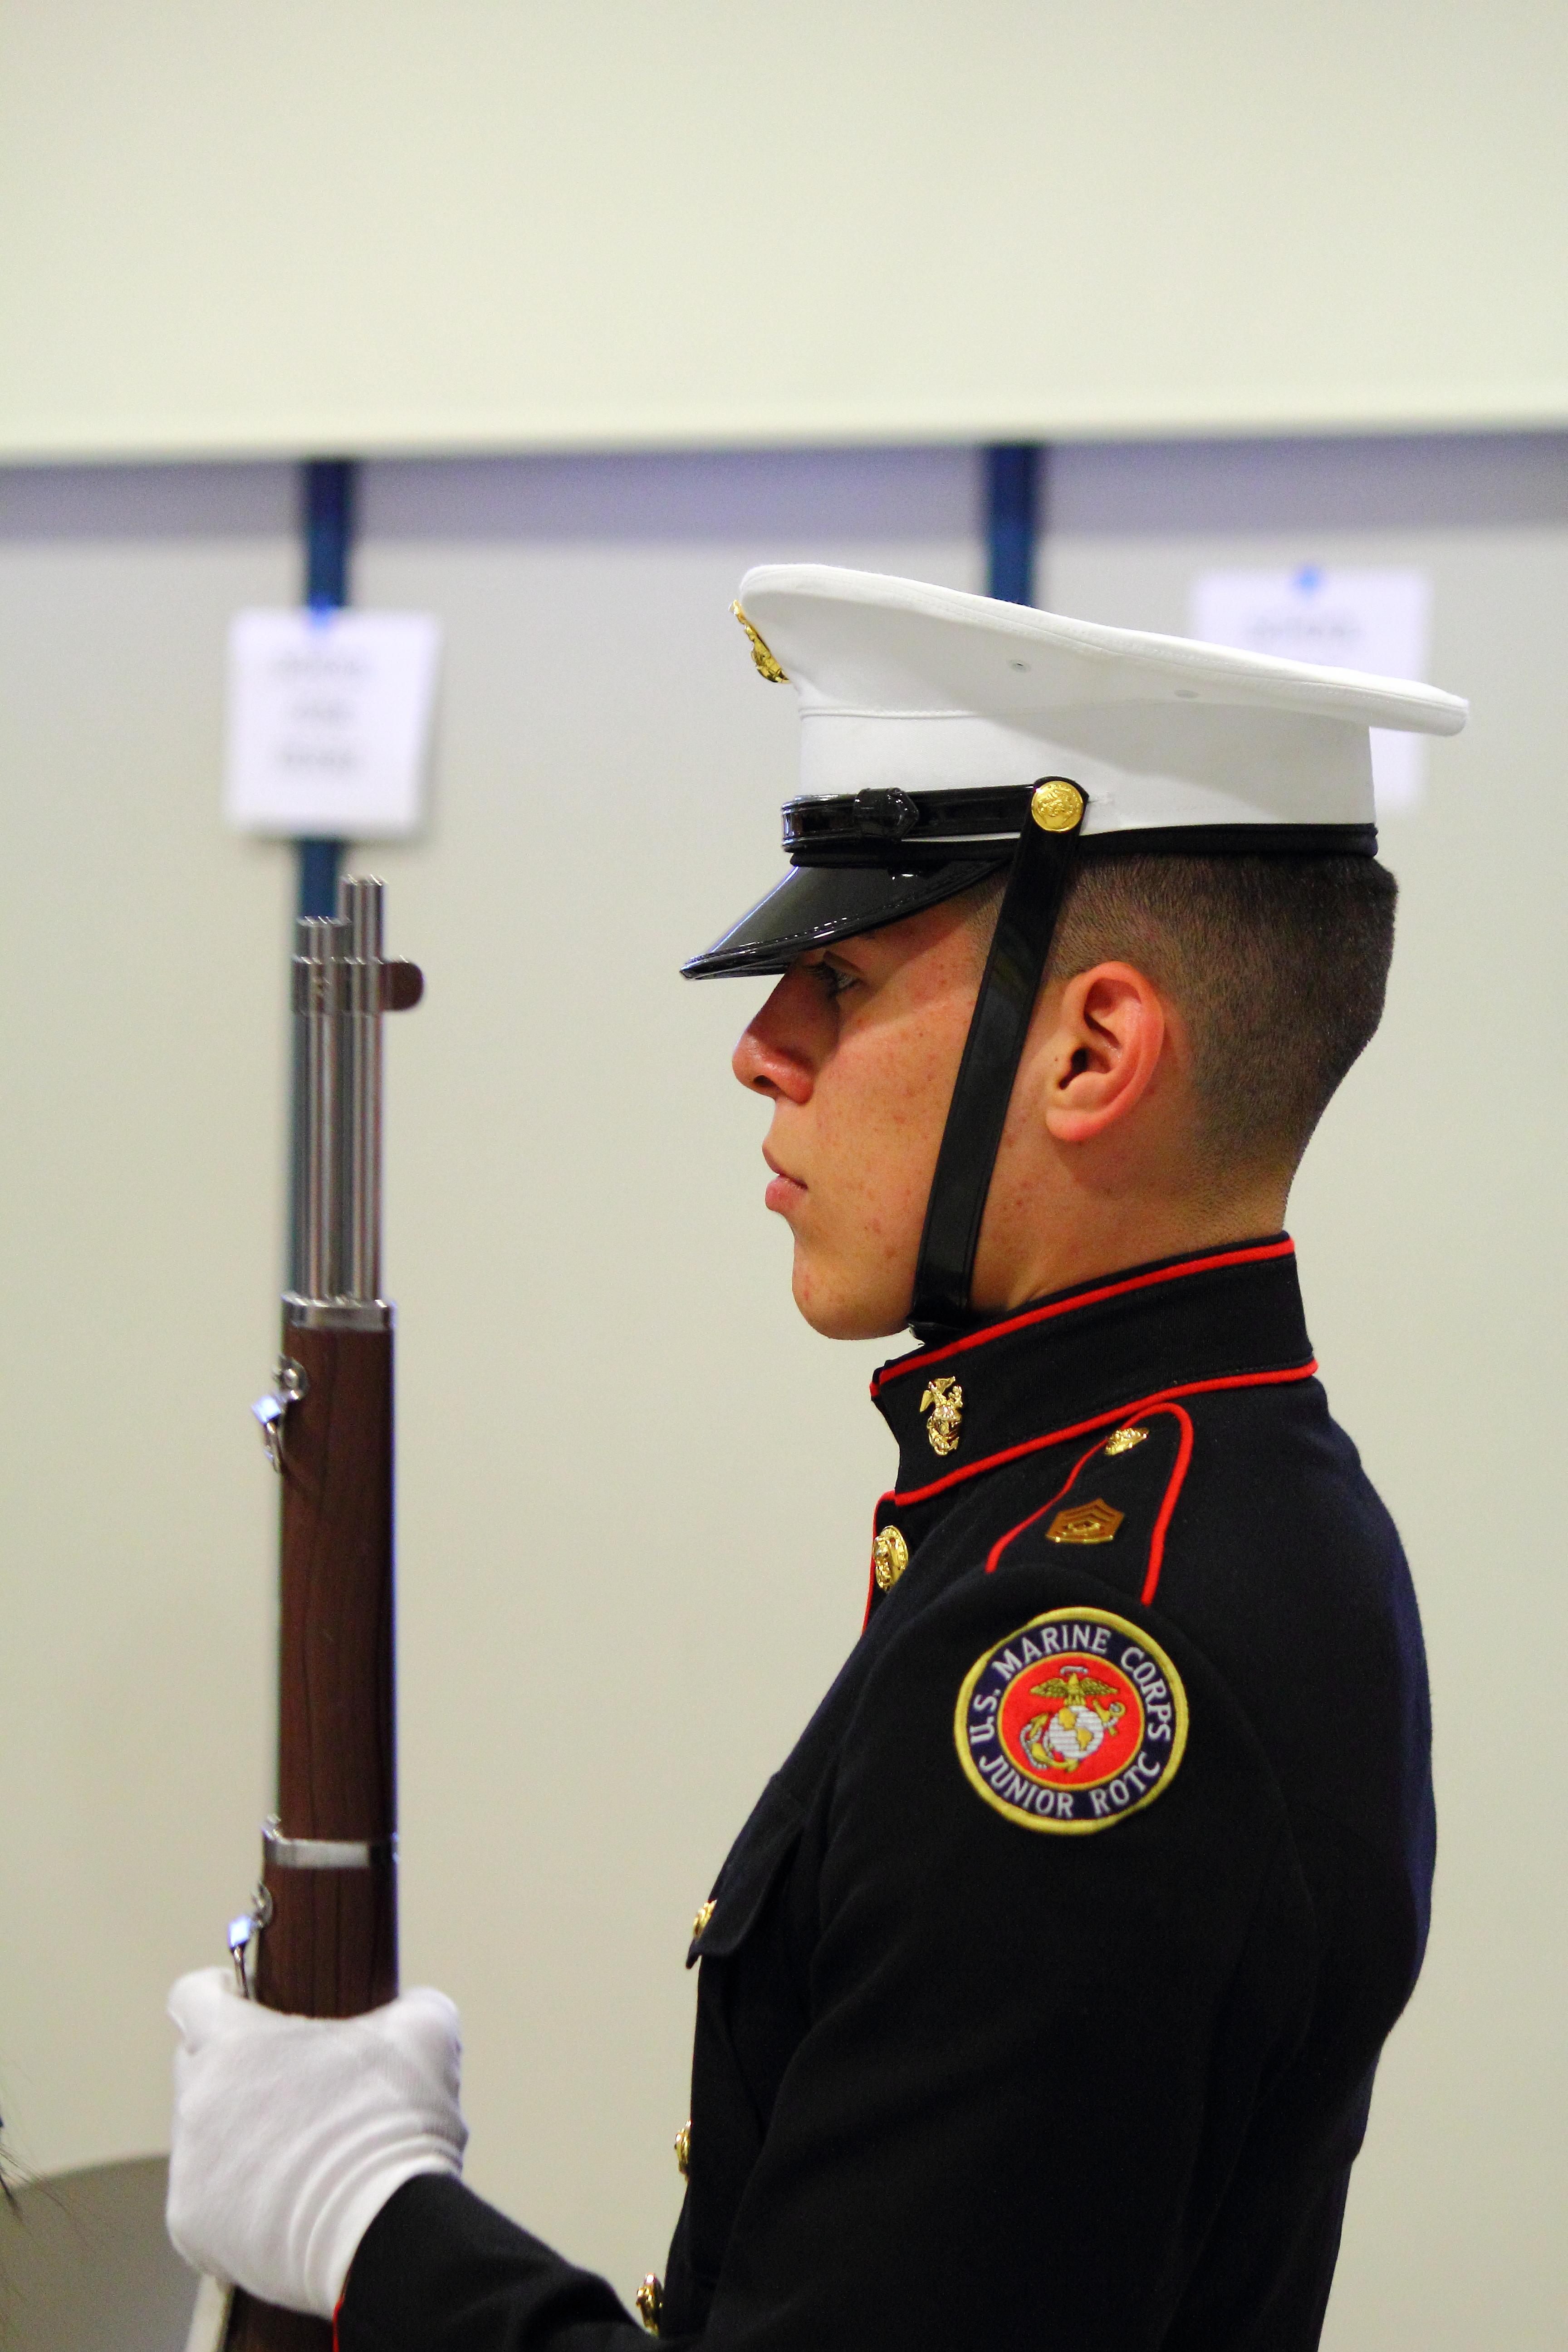 MCJROTC cadet at attention during flag salute